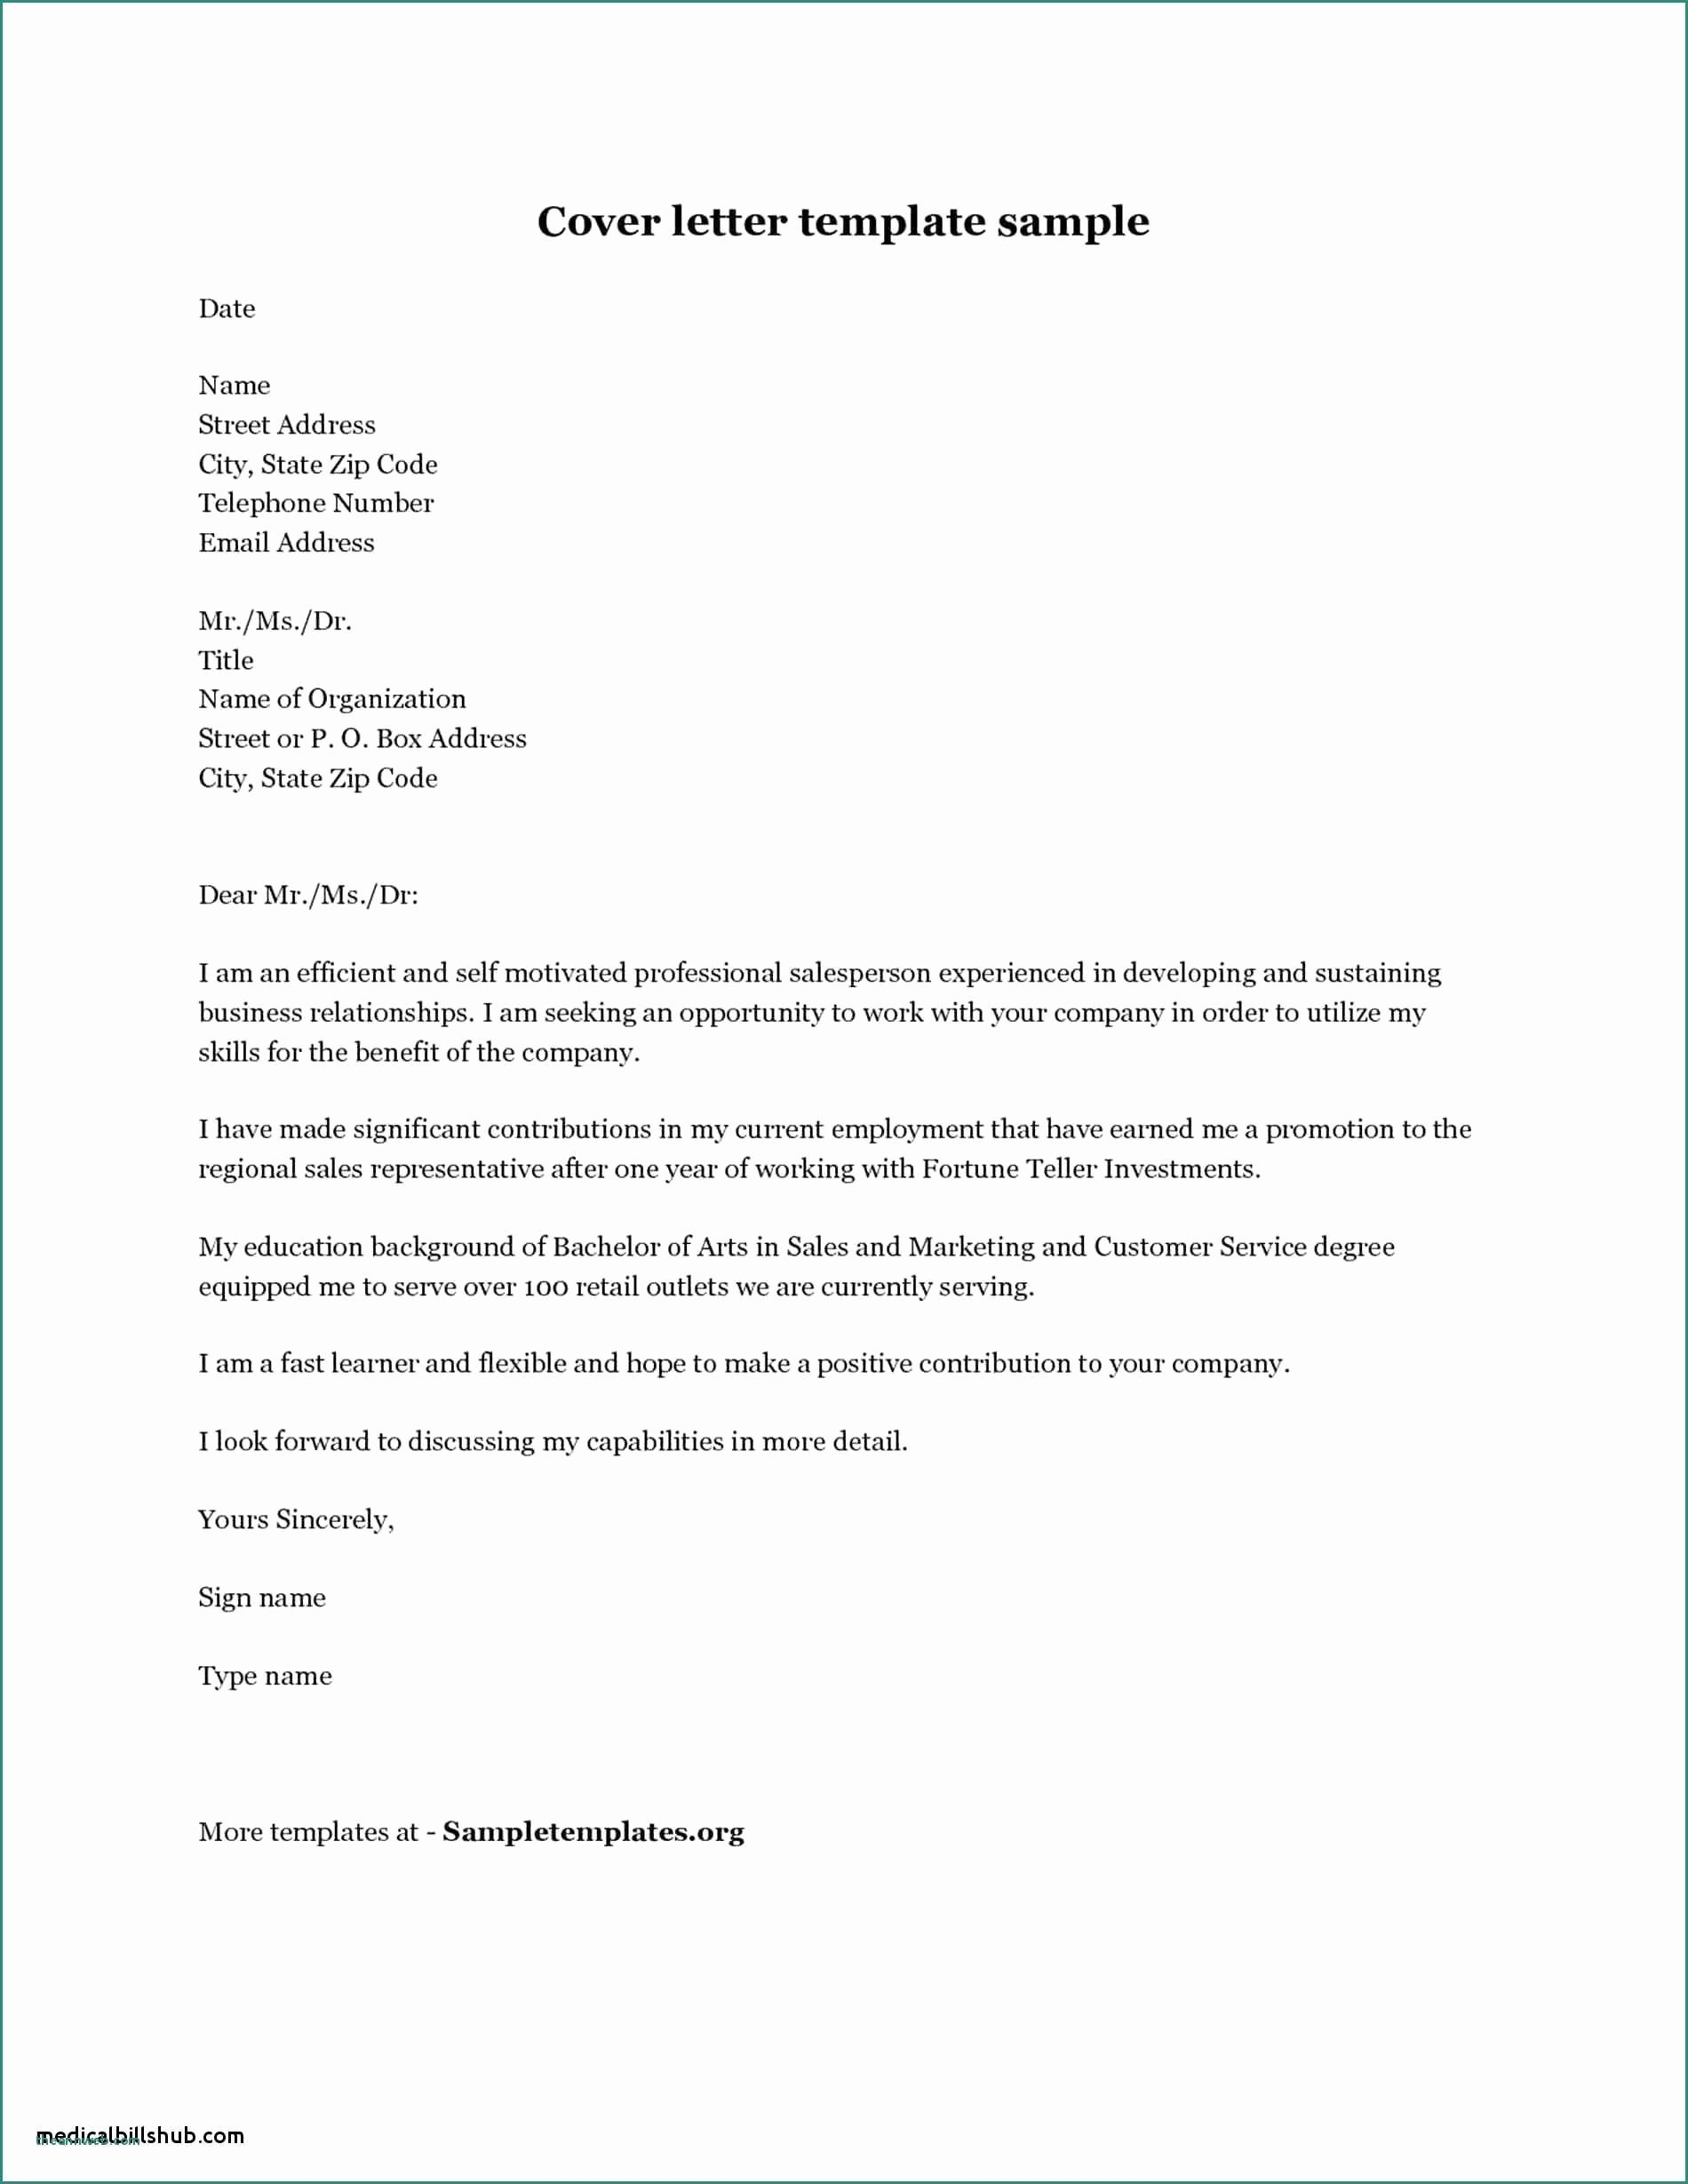 Cover Letter for Bank Elegant Cover Letter for Bank Teller with No Experience Cover